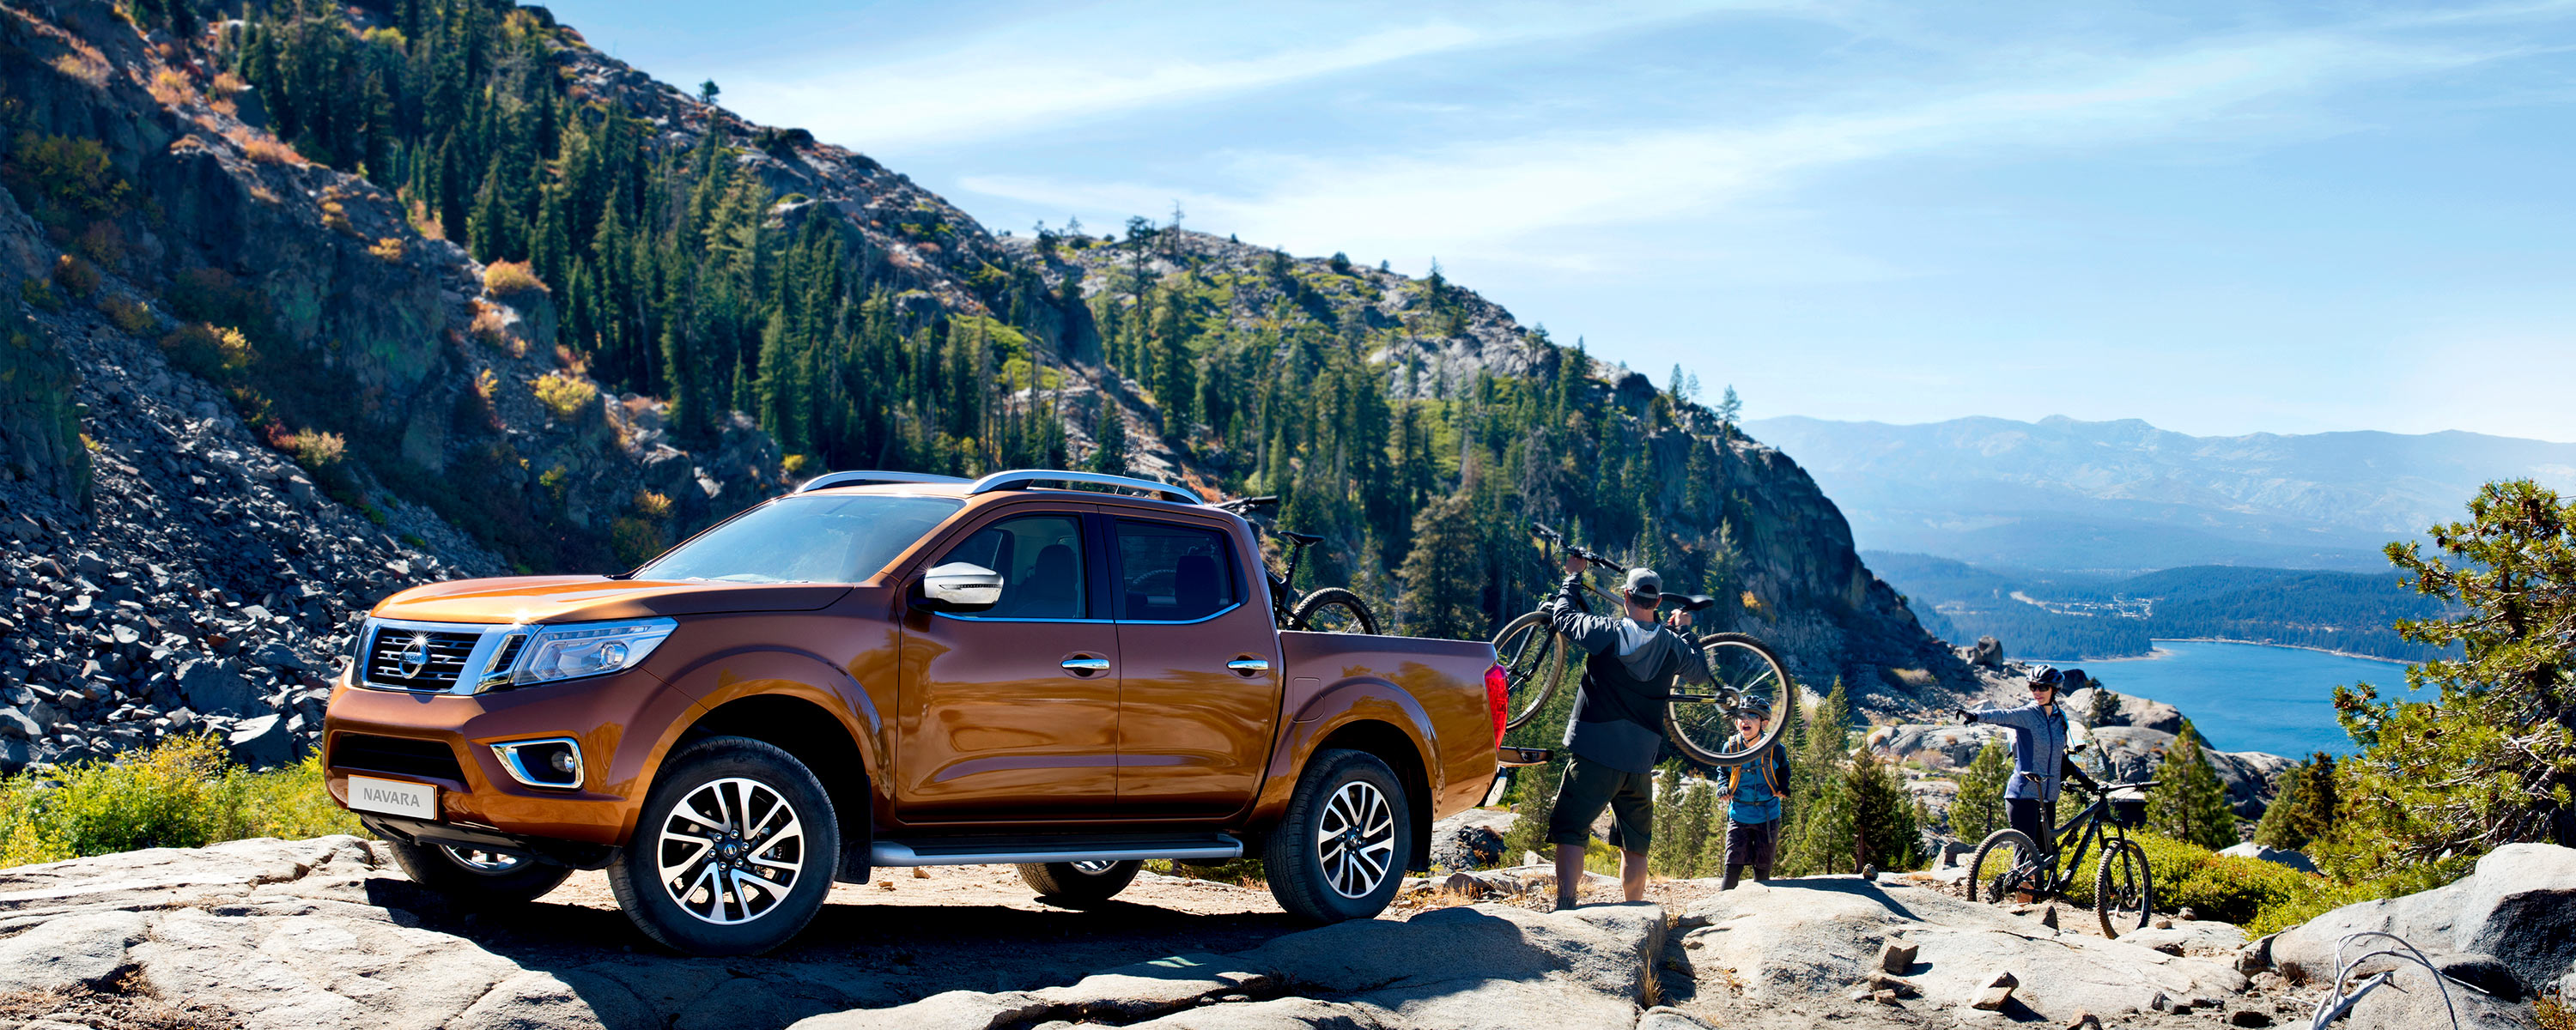 Nissan Navara beauty shot with people loading bikes in the bed